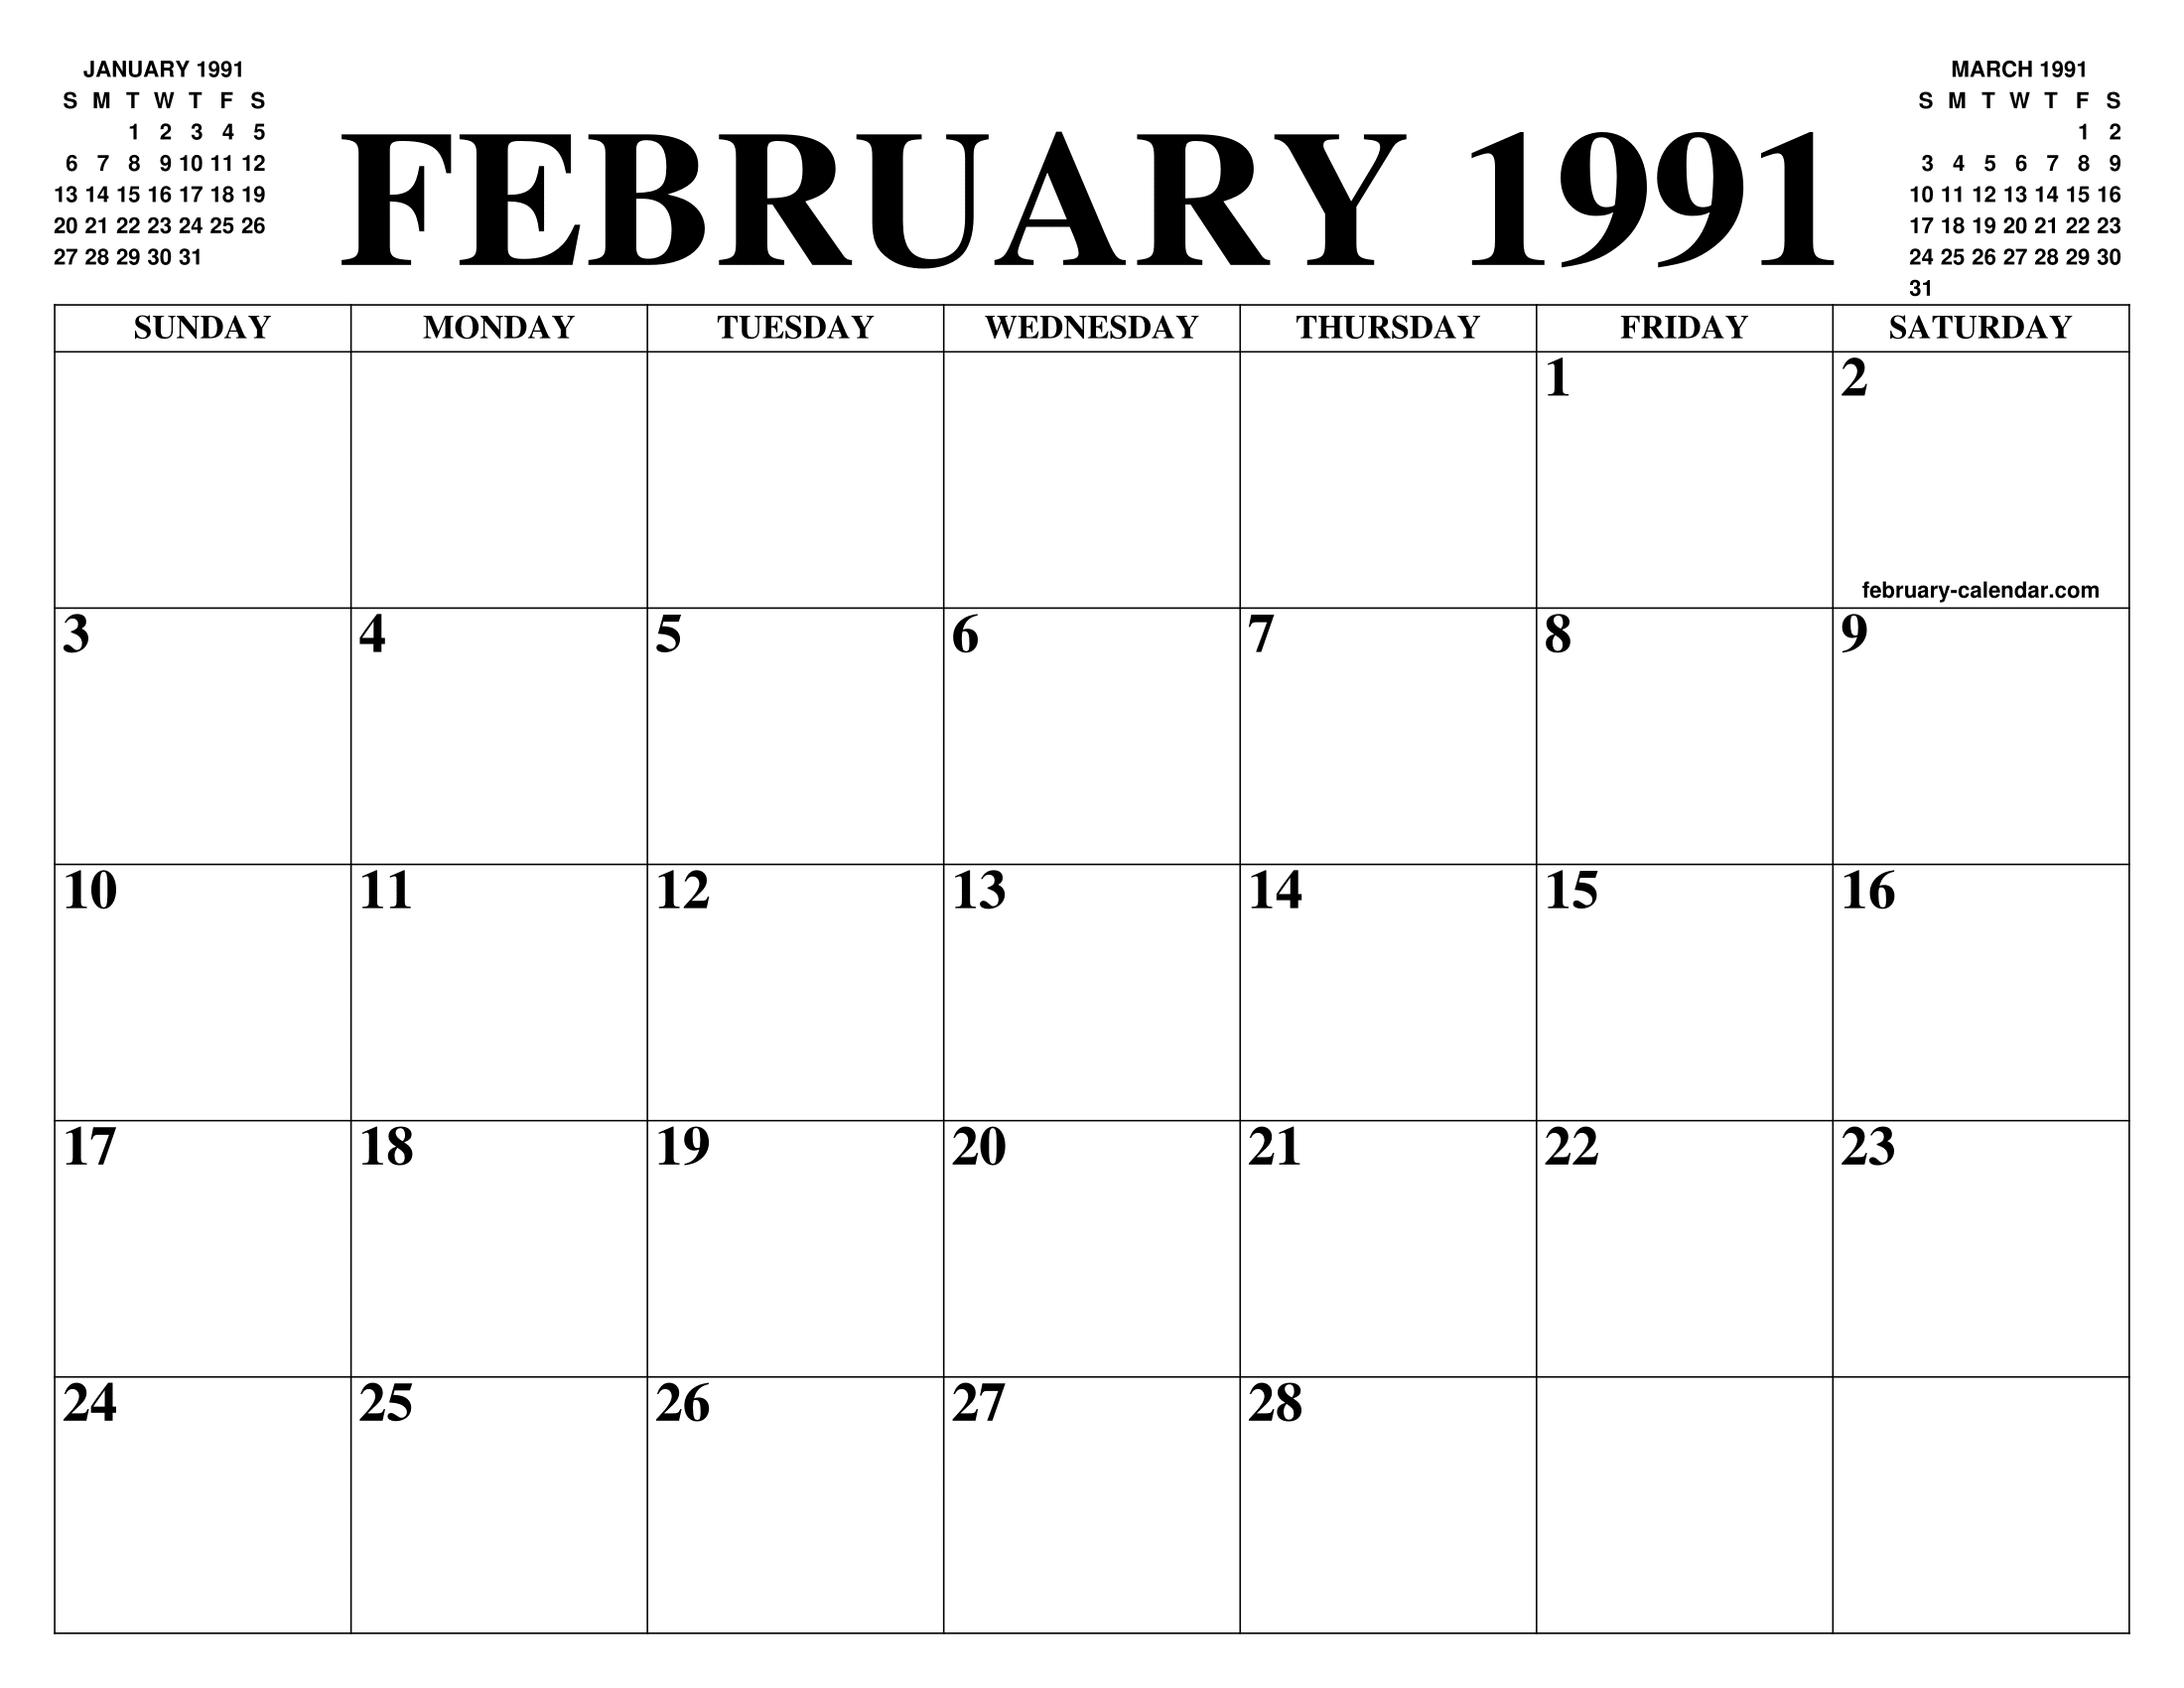 February 1991 Calendar Of The Month Free Printable February